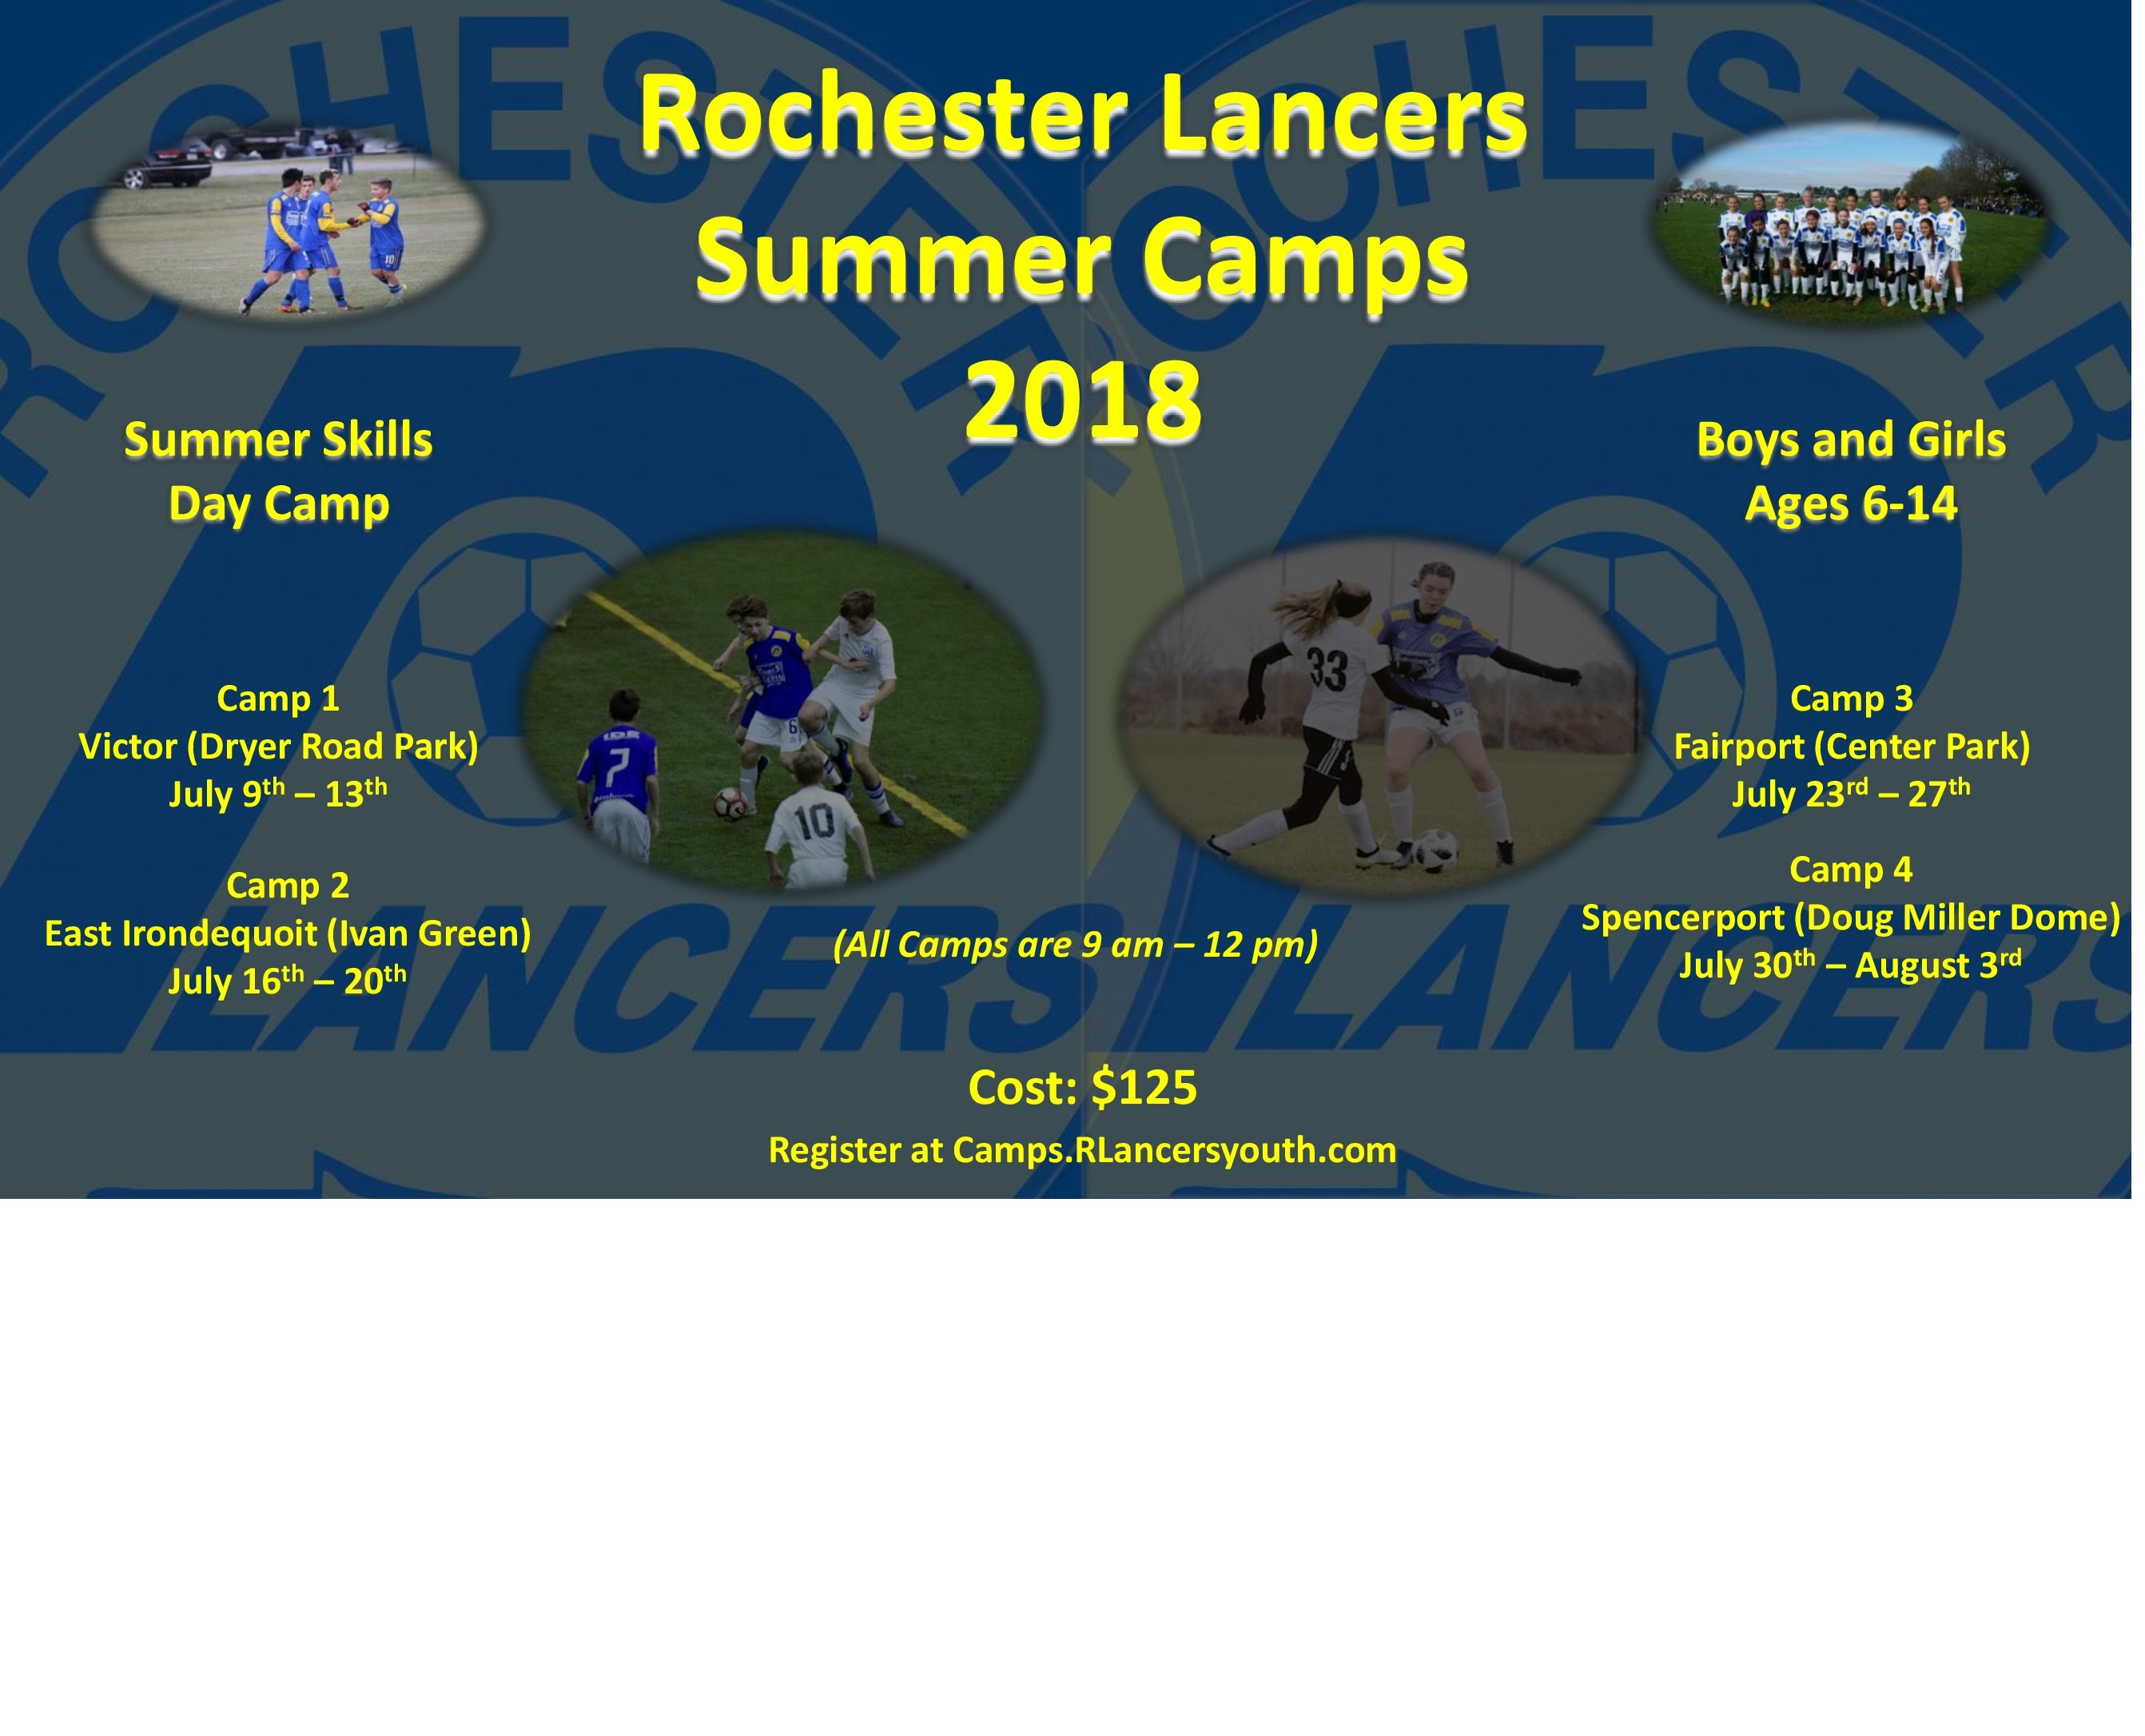 Rochester Lancers Summer Camps 2018